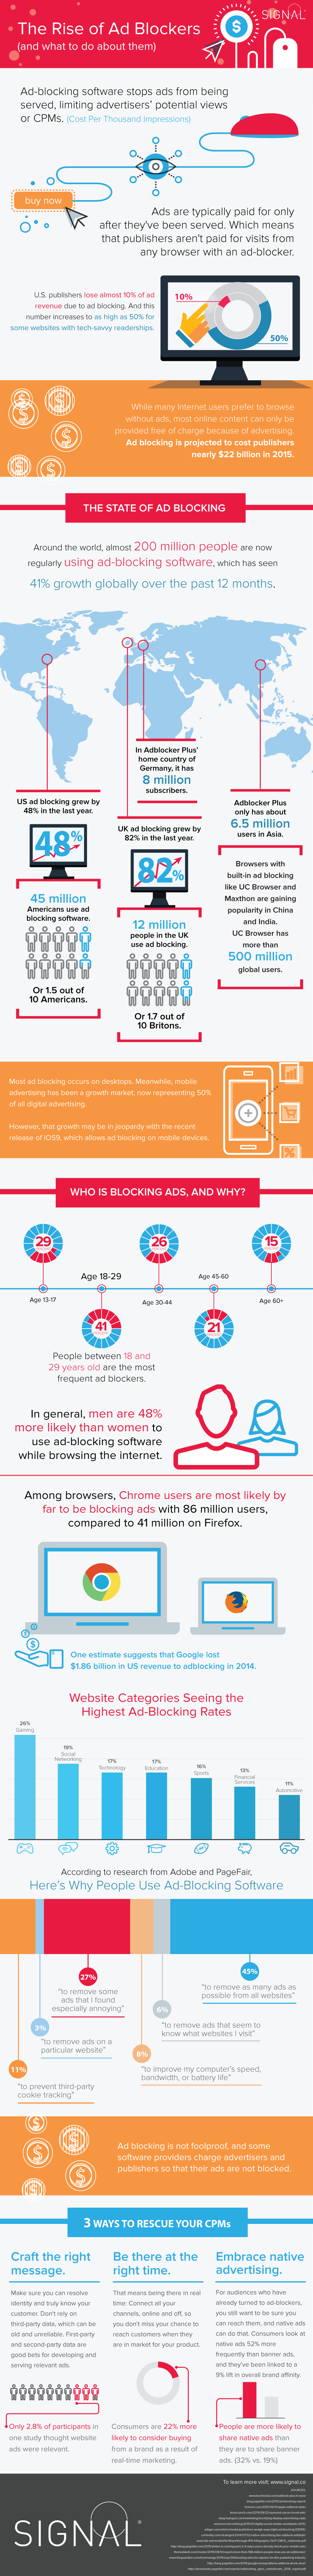 How advertisers and publishers can combat ad-blockers on desktop and mobile.